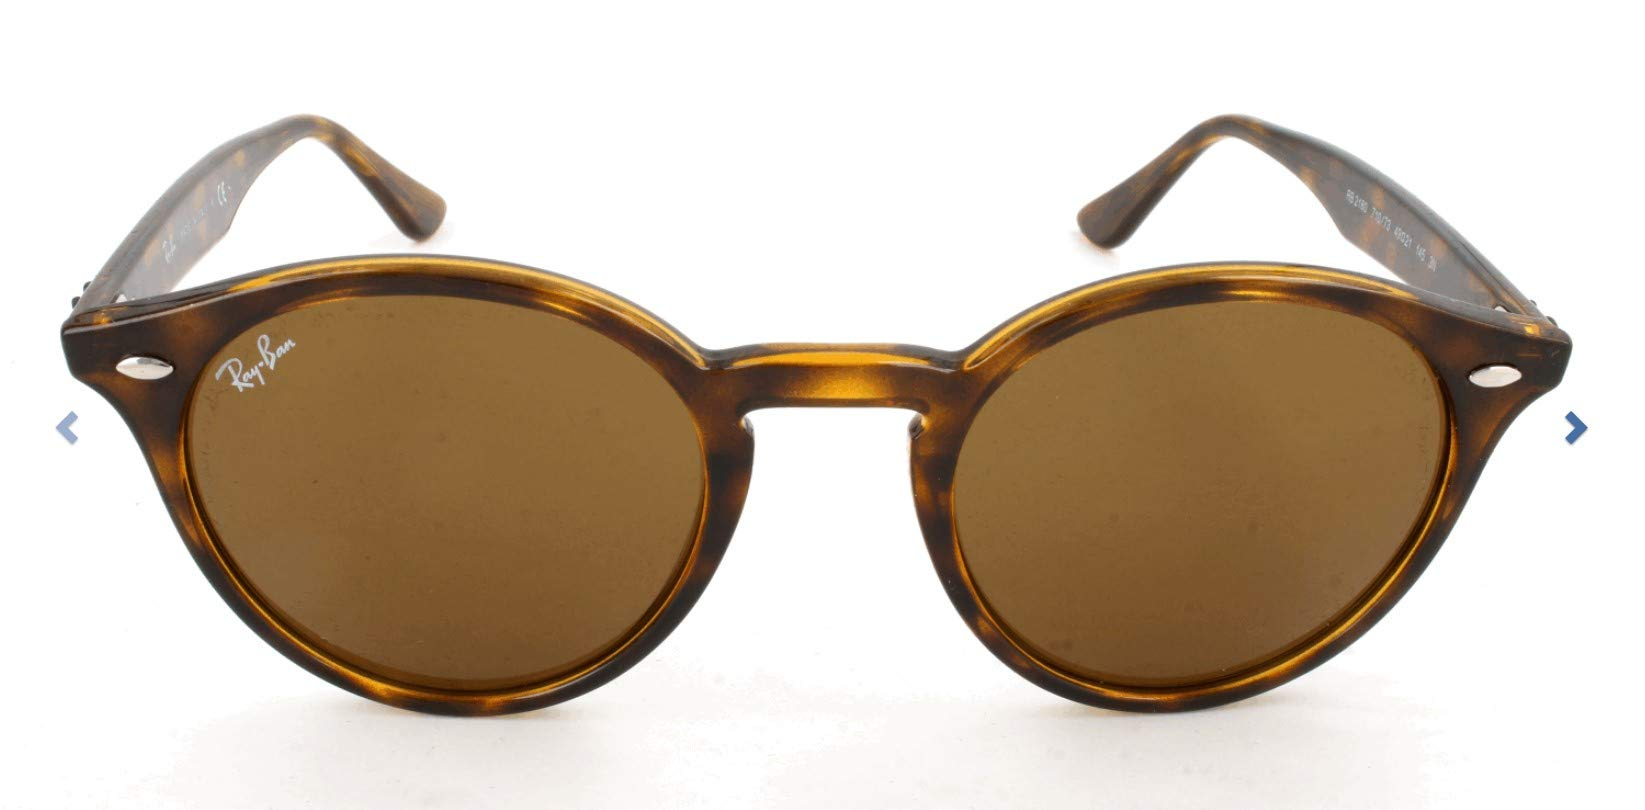 RAY-BAN RB2180 Round Sunglasses, Dark Tortoise/Brown, 49 mm by RAY-BAN